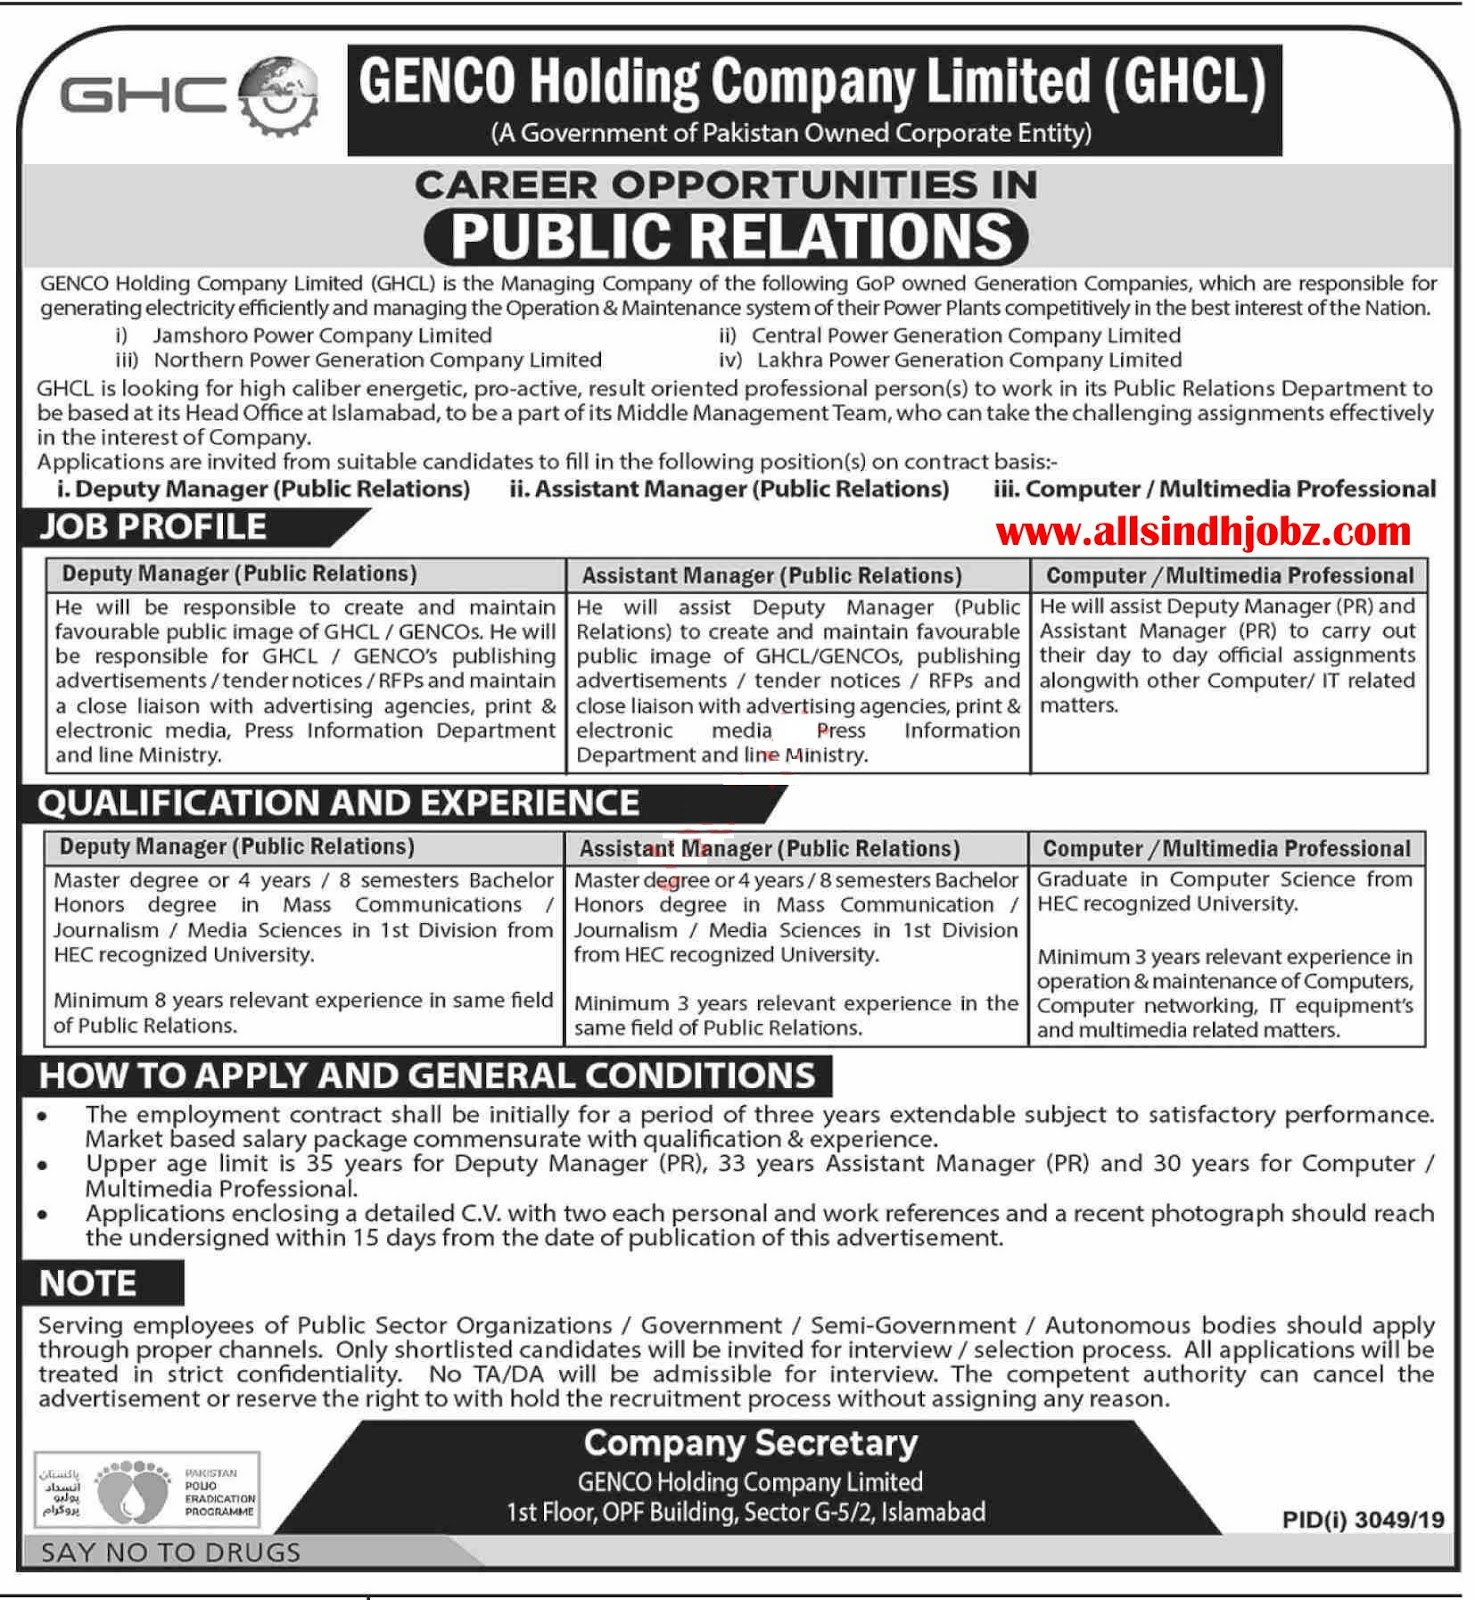 GENCO Holding Company Limited GHCL Jobs 2019 Latest